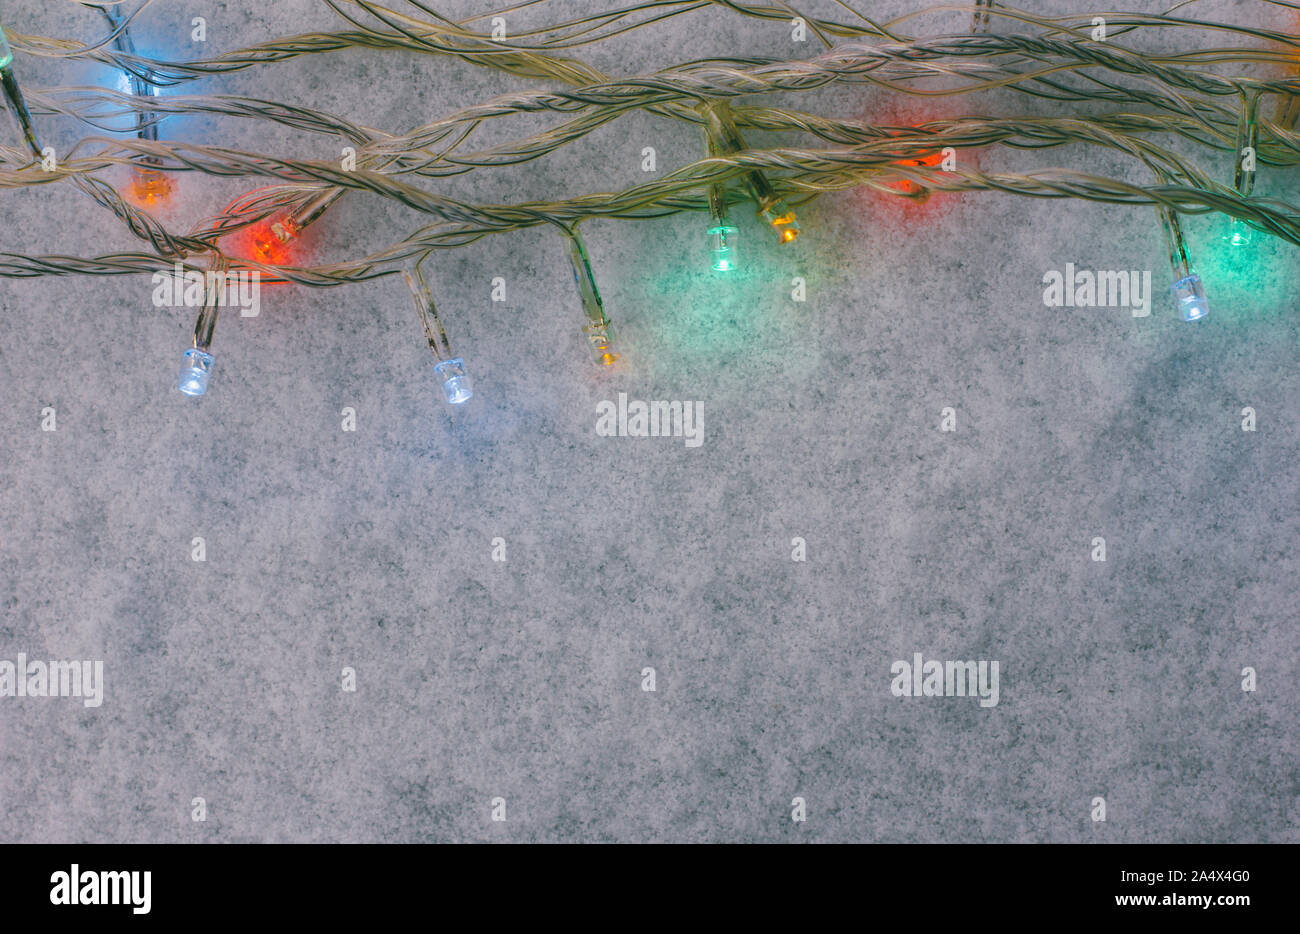 Christmas or new year background with multicolored Christmas lights on snow with space view, top view Stock Photo